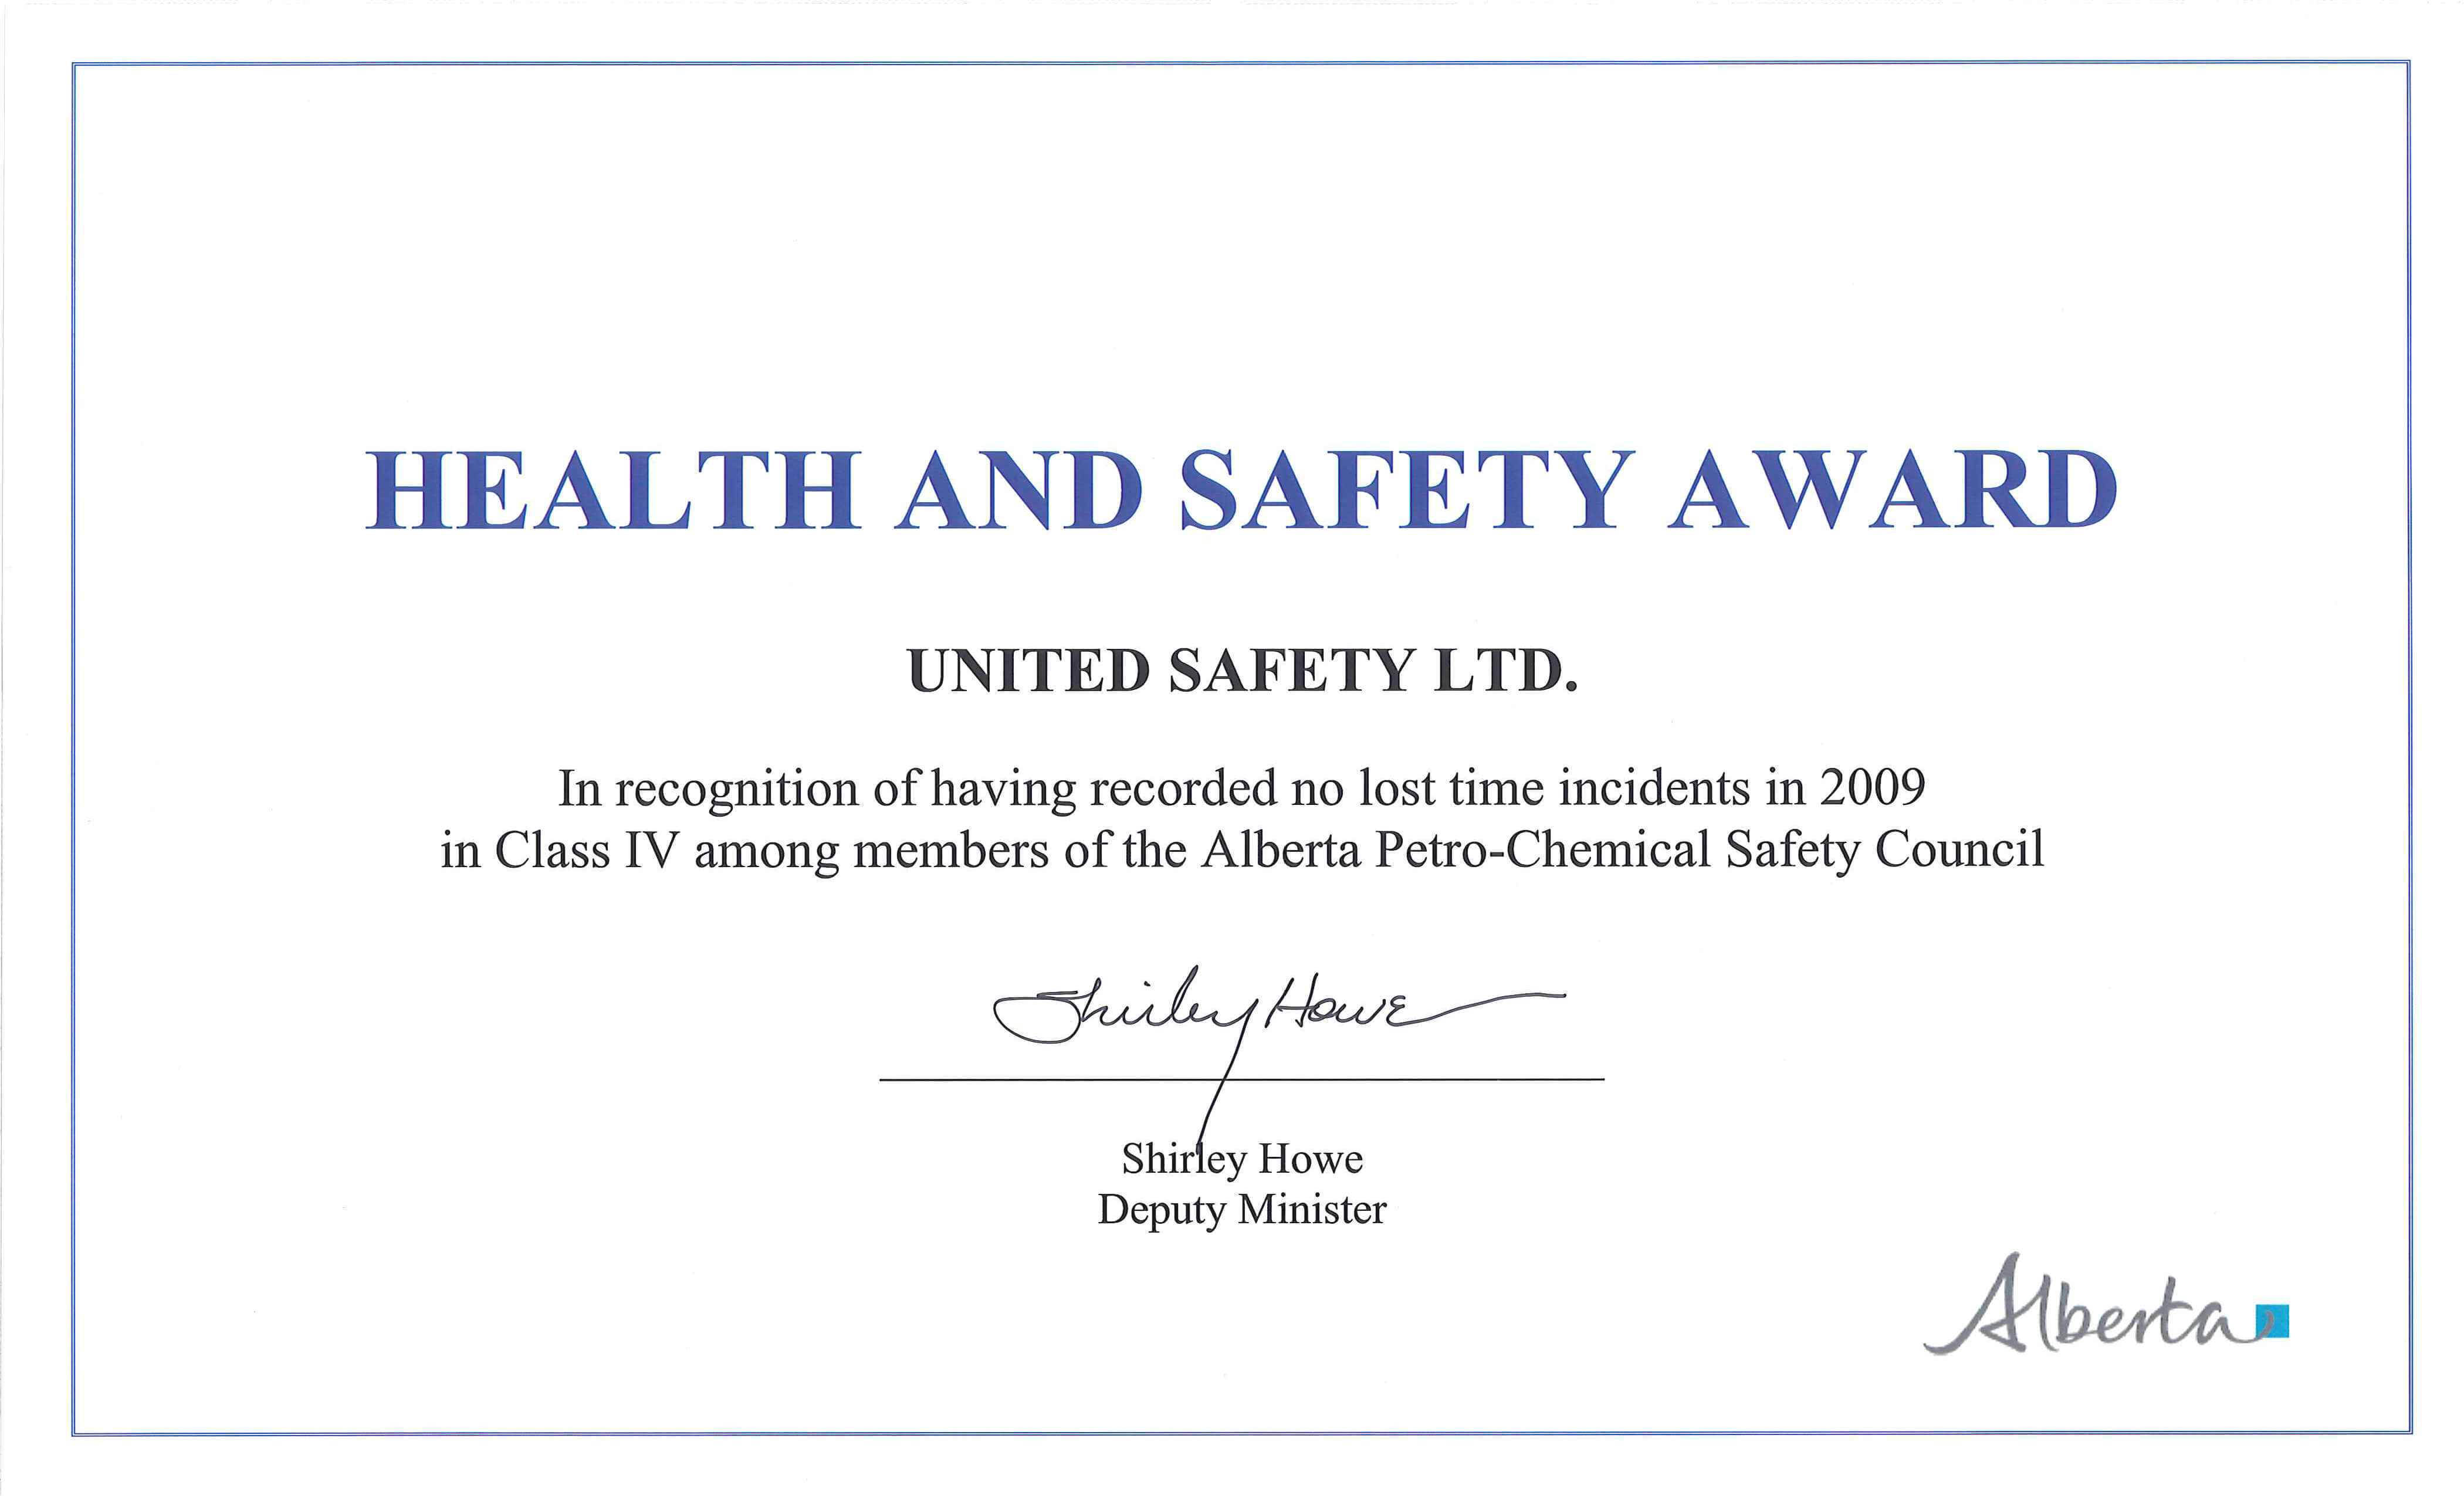 Safety Recognition Certificate Template - Atlantaauctionco For Safety Recognition Certificate Template